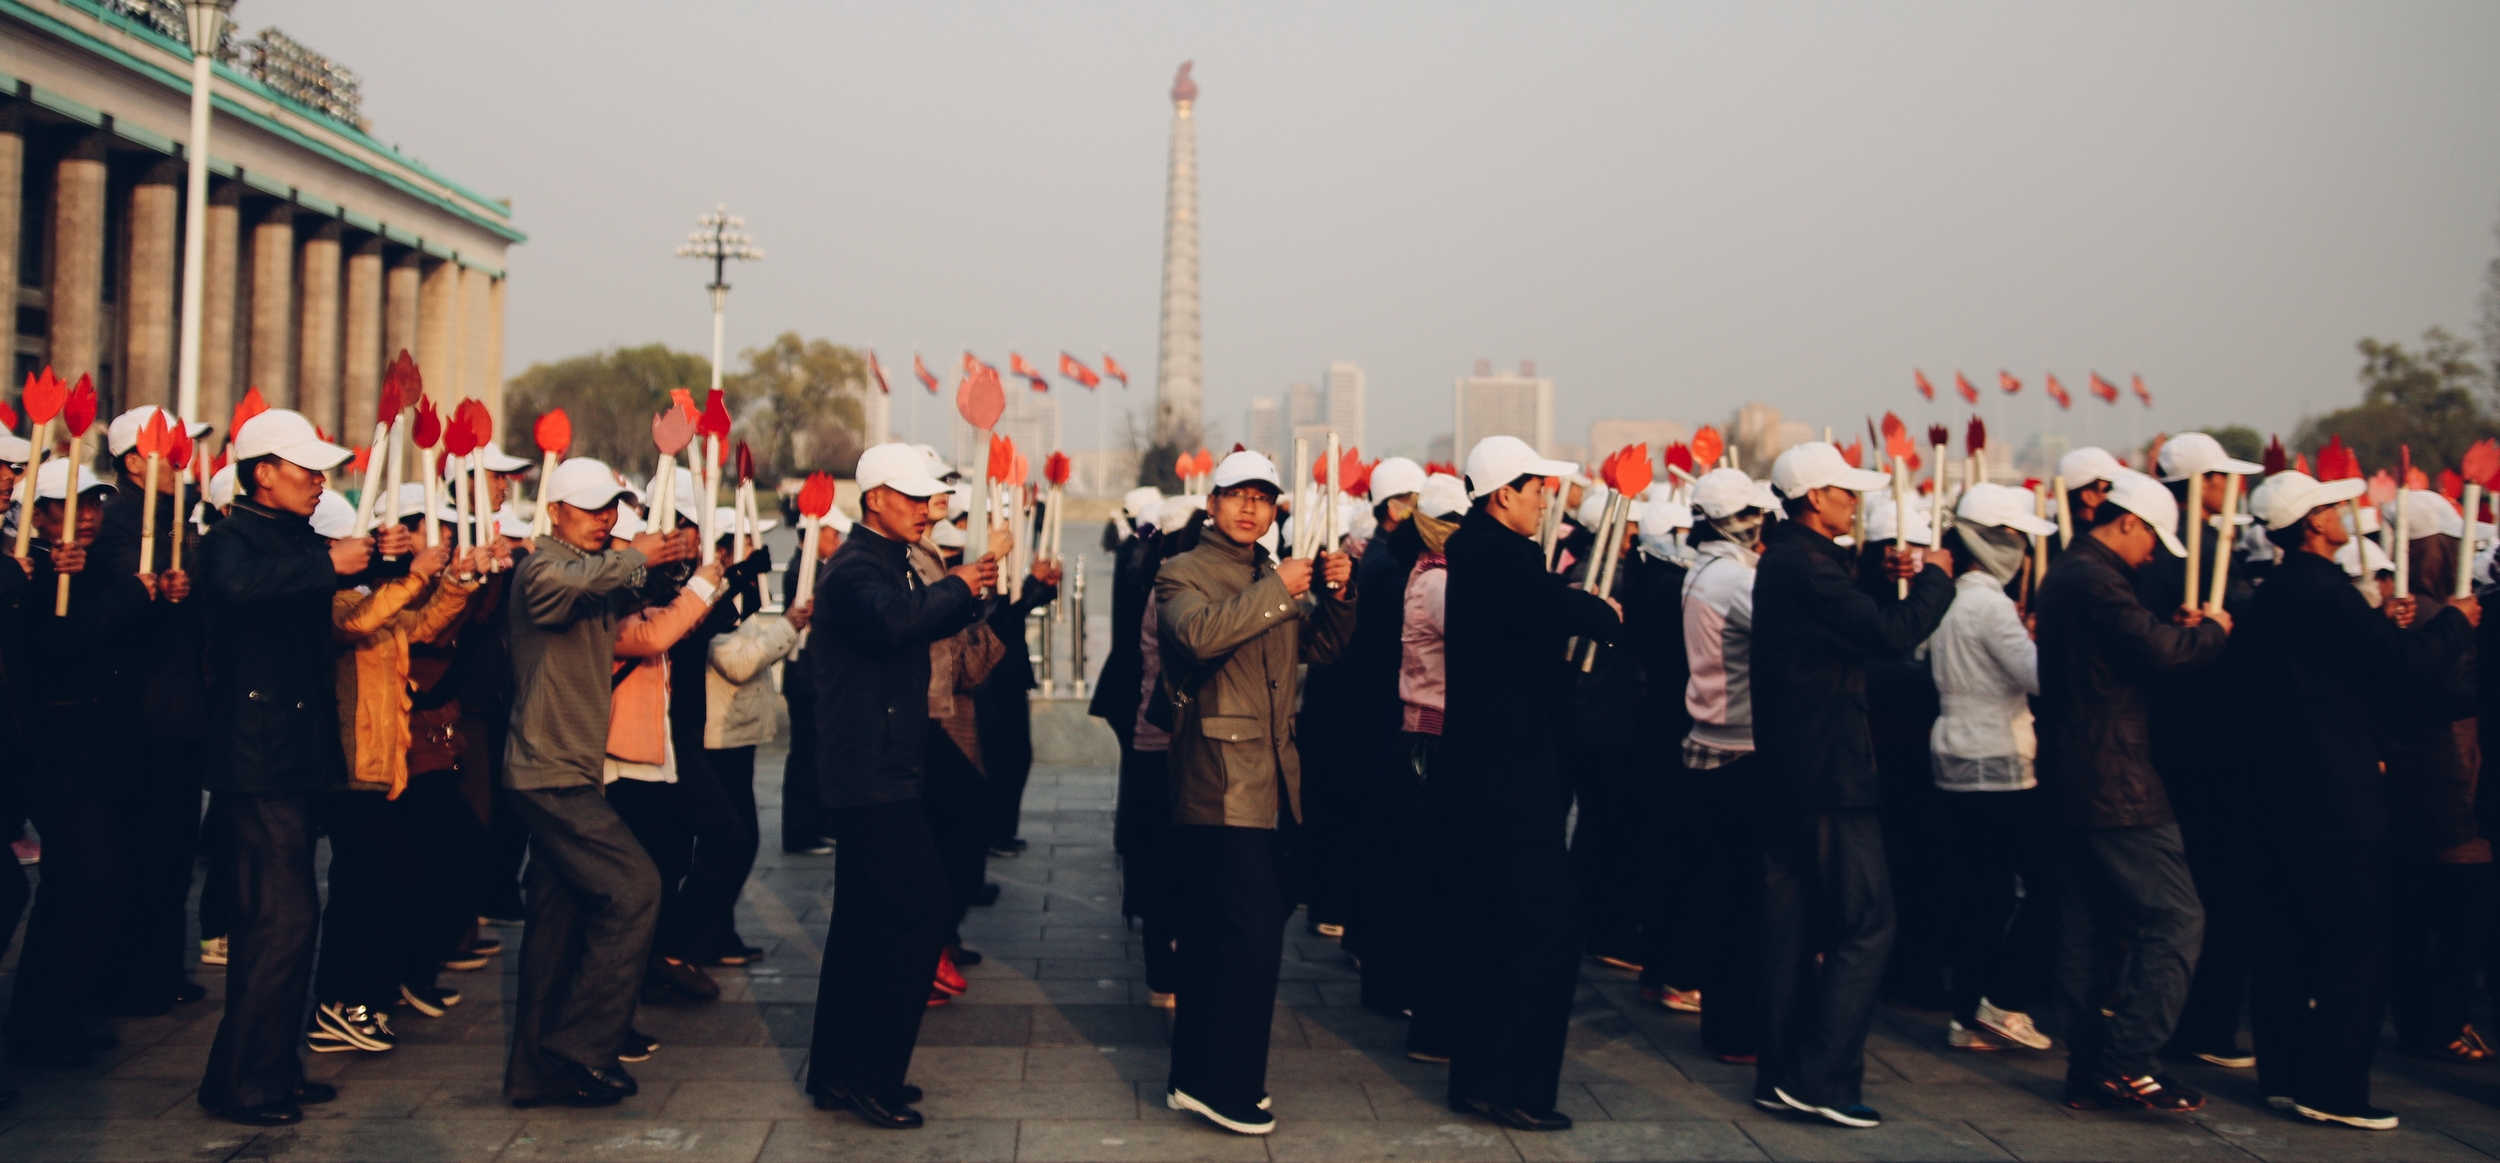 Practicing in Kim Il Sung Square for a torch parade.  Photo by Joe Han